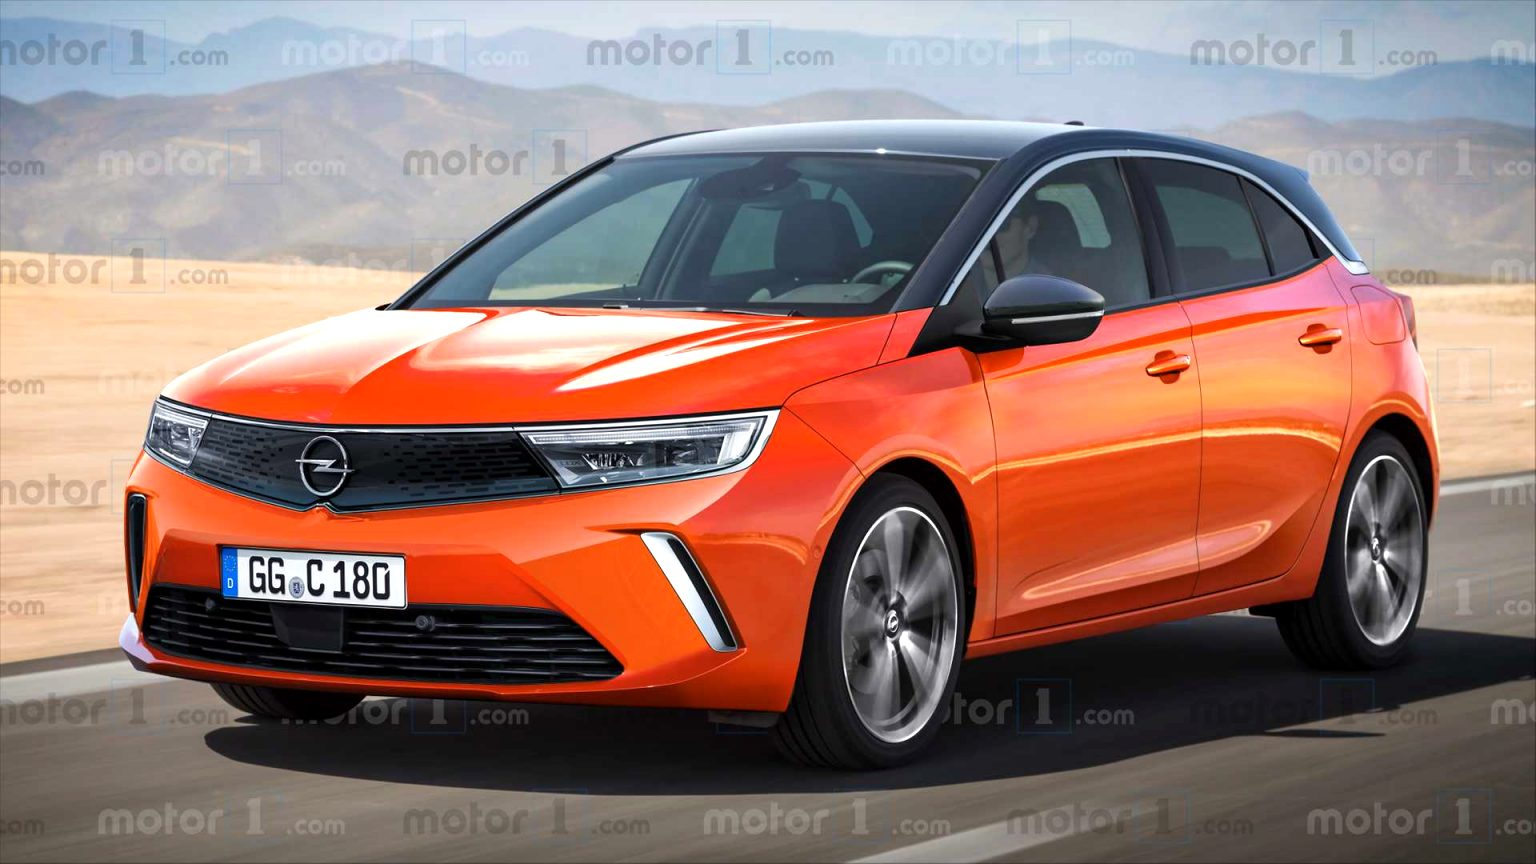 2021 opel astra review Price, Design and Review